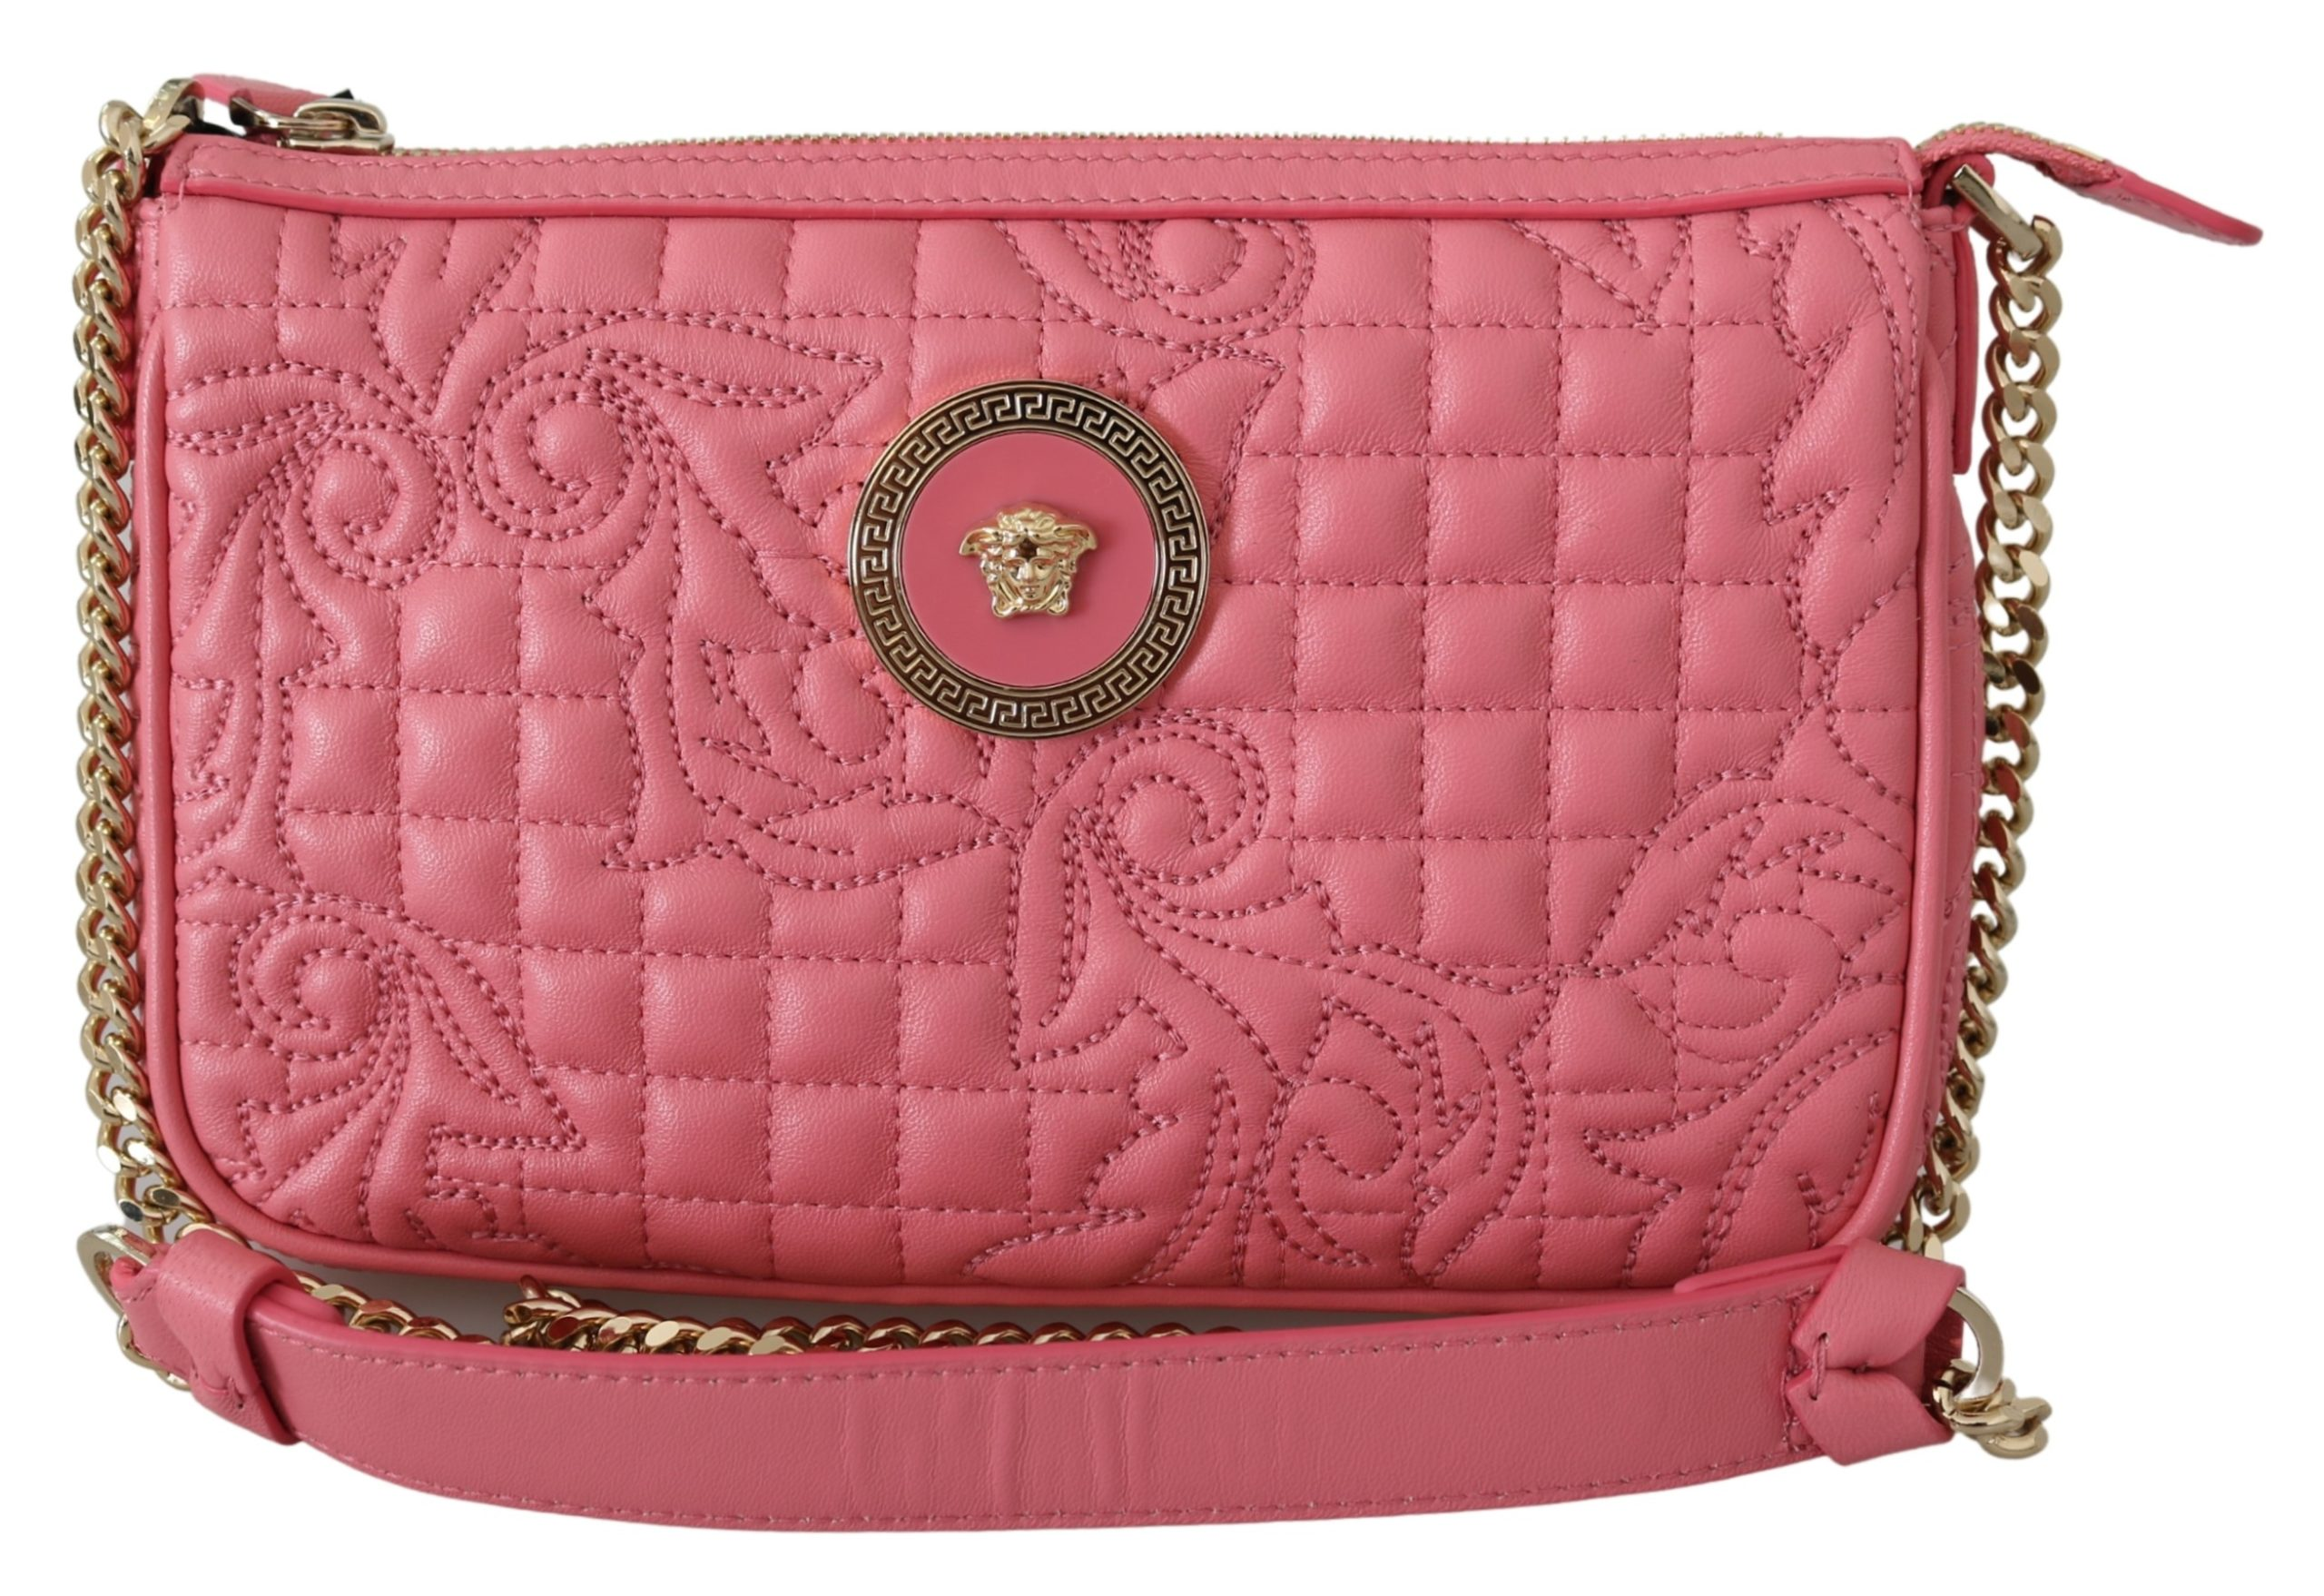 Versace Women's Quilted Nappa Leather Clutch Bag Pink 8053850414109